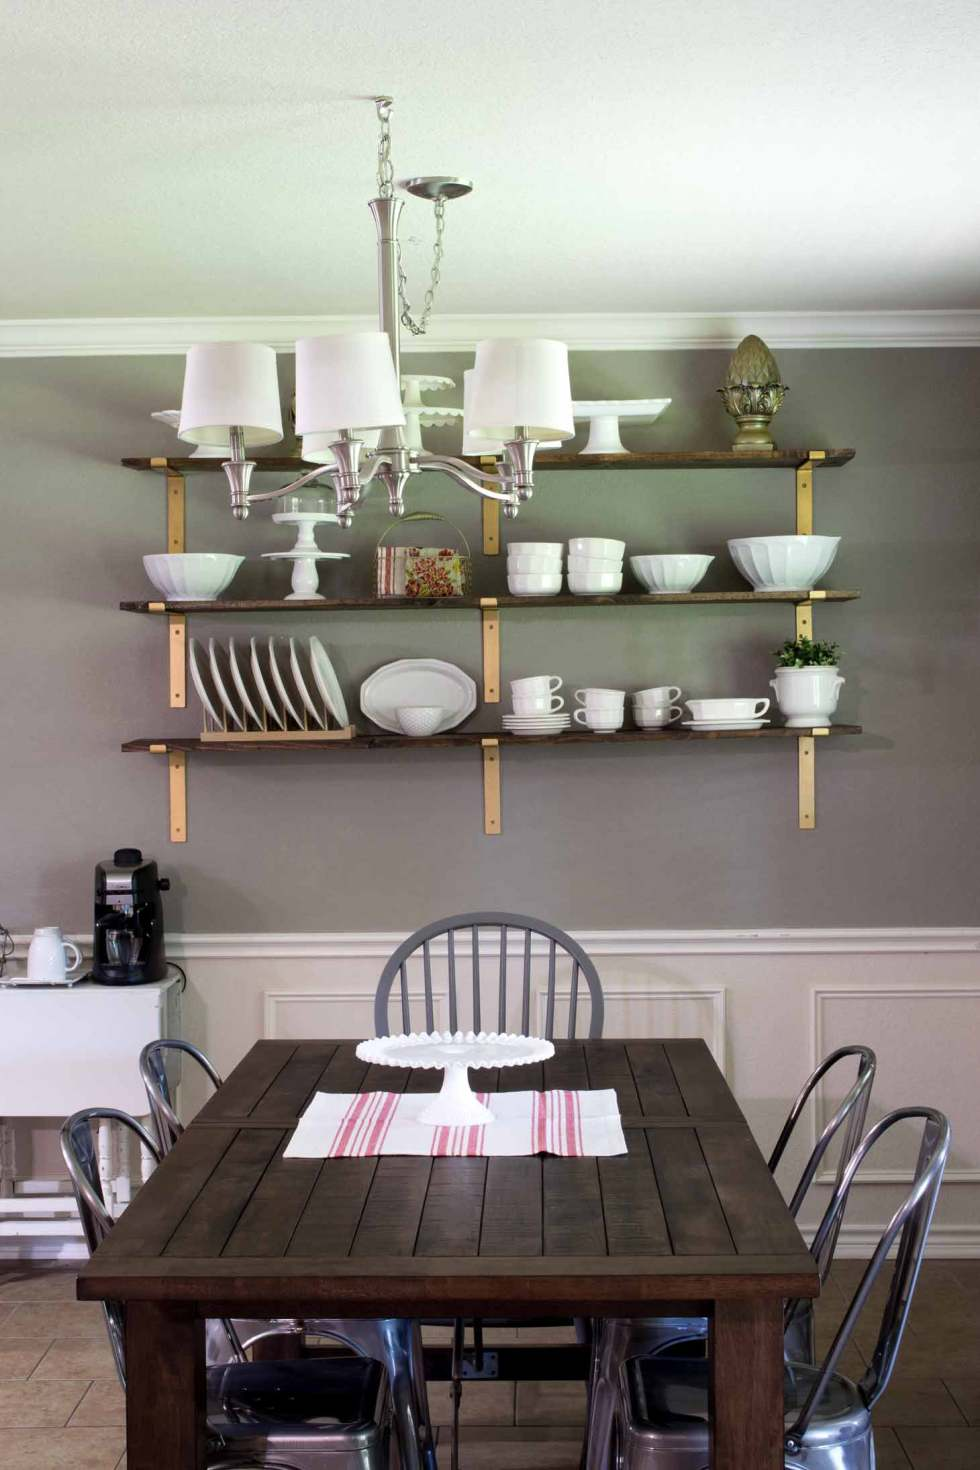 Dining Room Shelves For Dish Display - Major Hoff Takes A